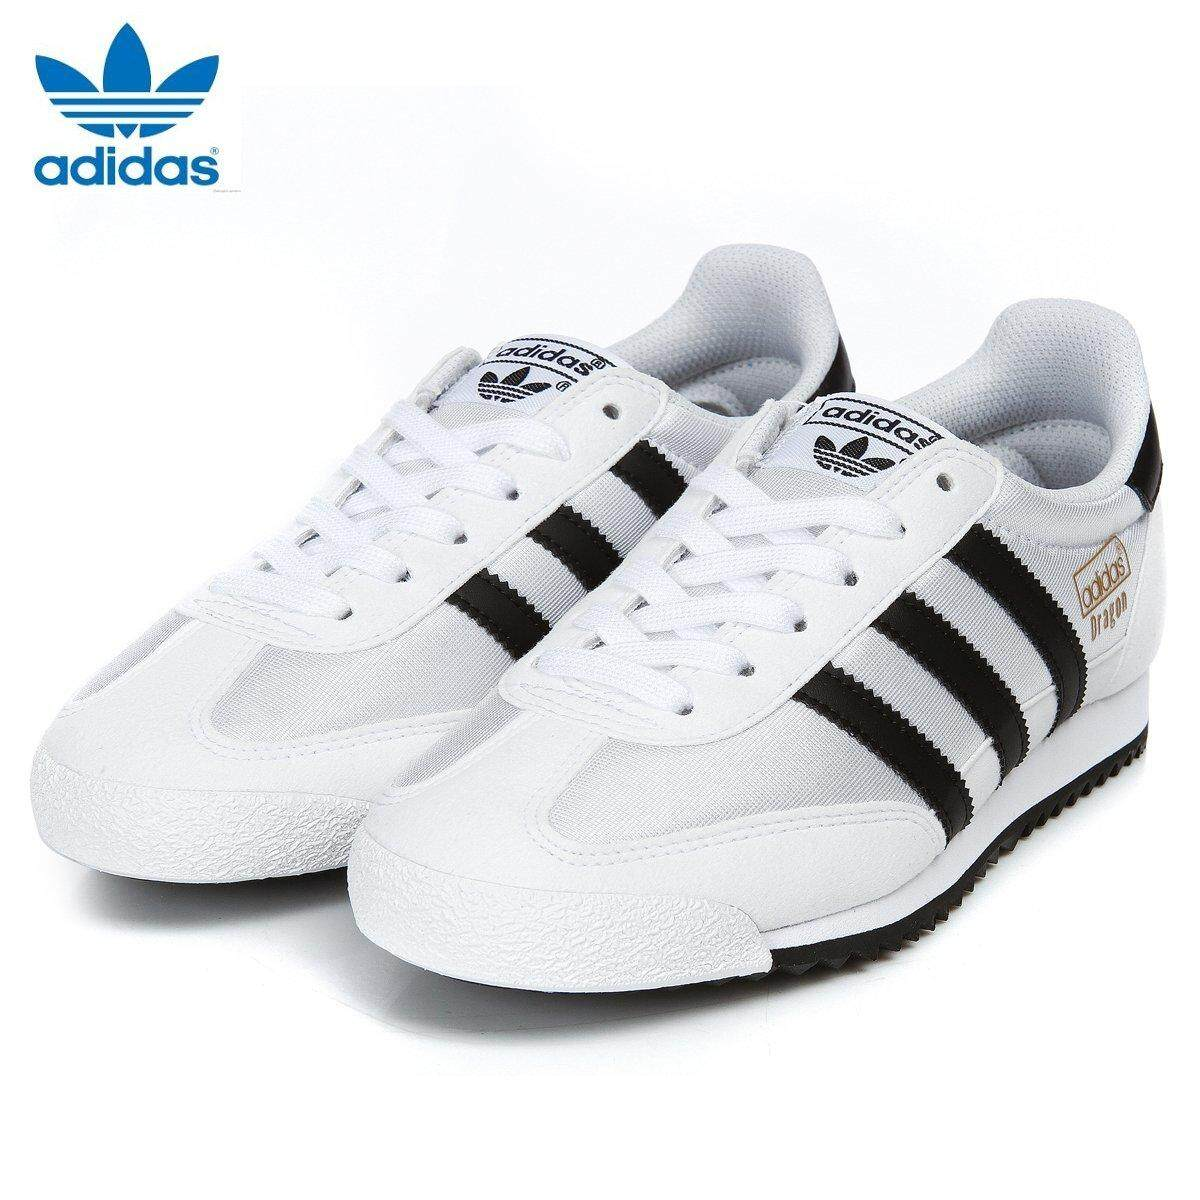 588e33c90f7fb8 Adidas Unisex Originals Dragon vantage Casual shoes BB1270 white Black